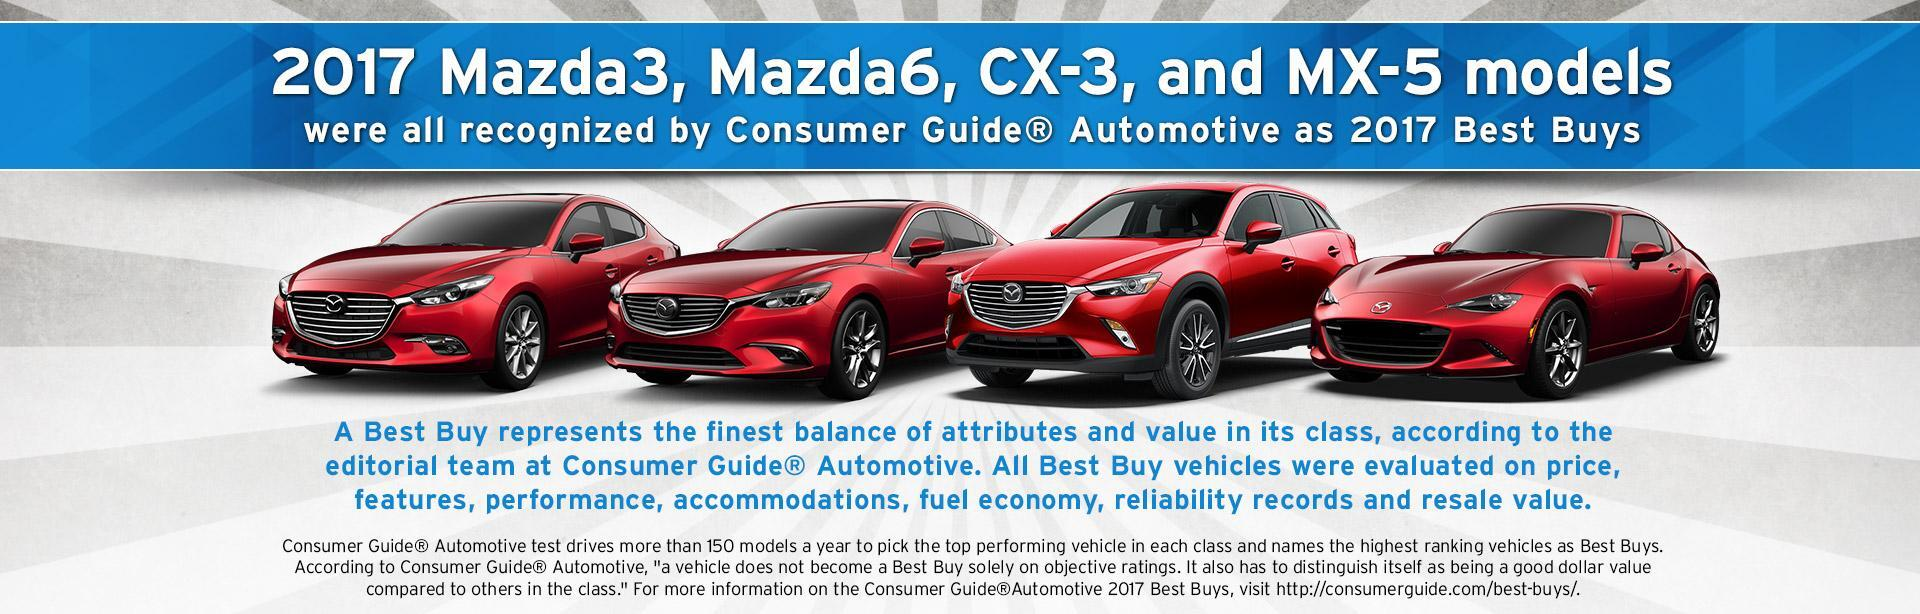 Consumer Guide Best Buys